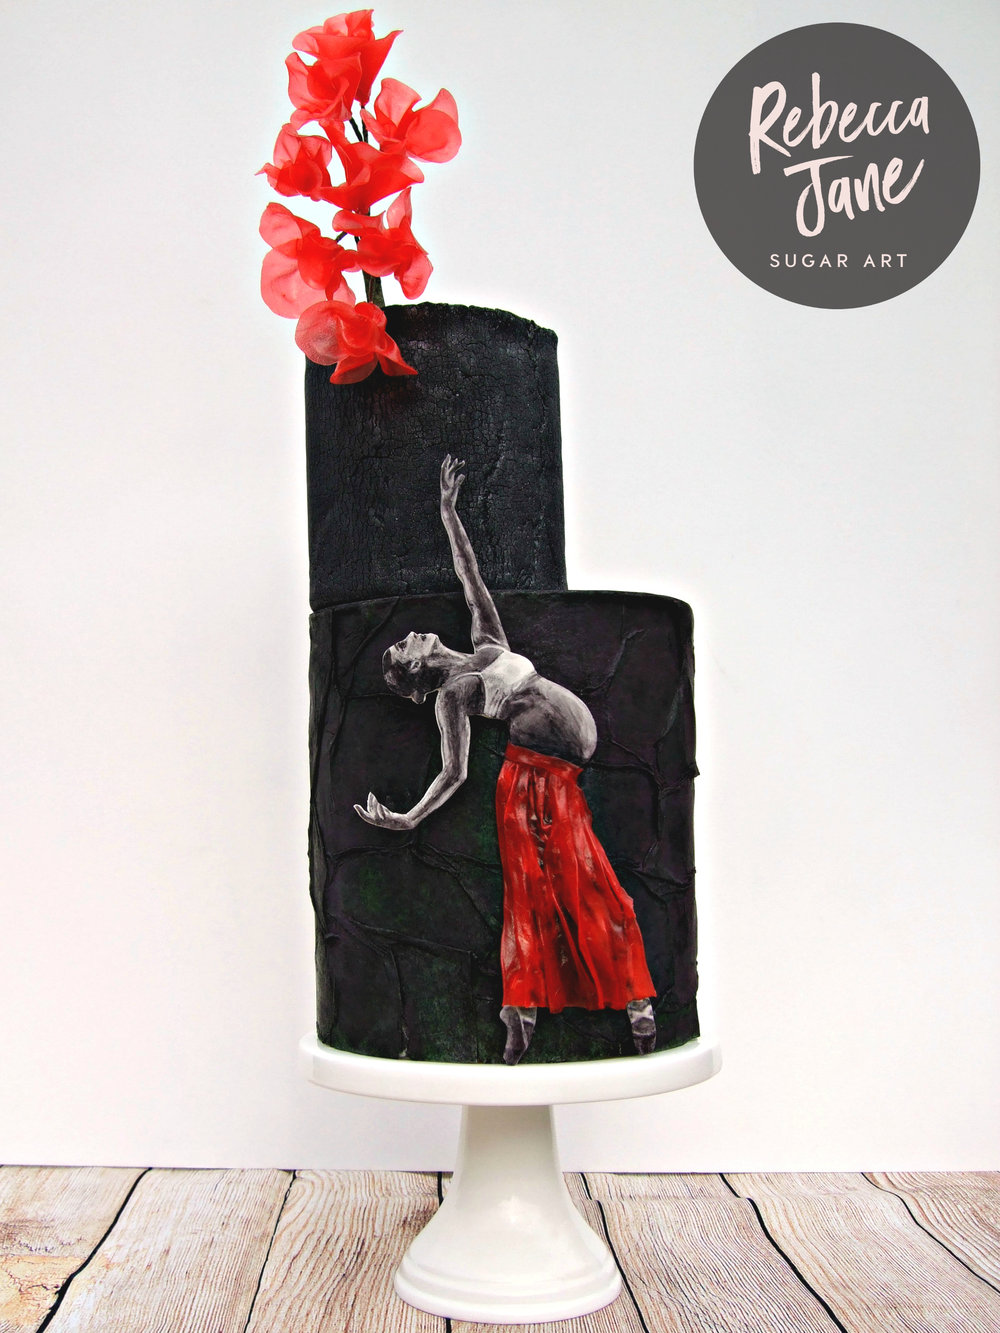 Rebecca Jane Sugar Art - Team Red collaboration black crackle texture rice paper flowers with handpainted pregnant ballerina